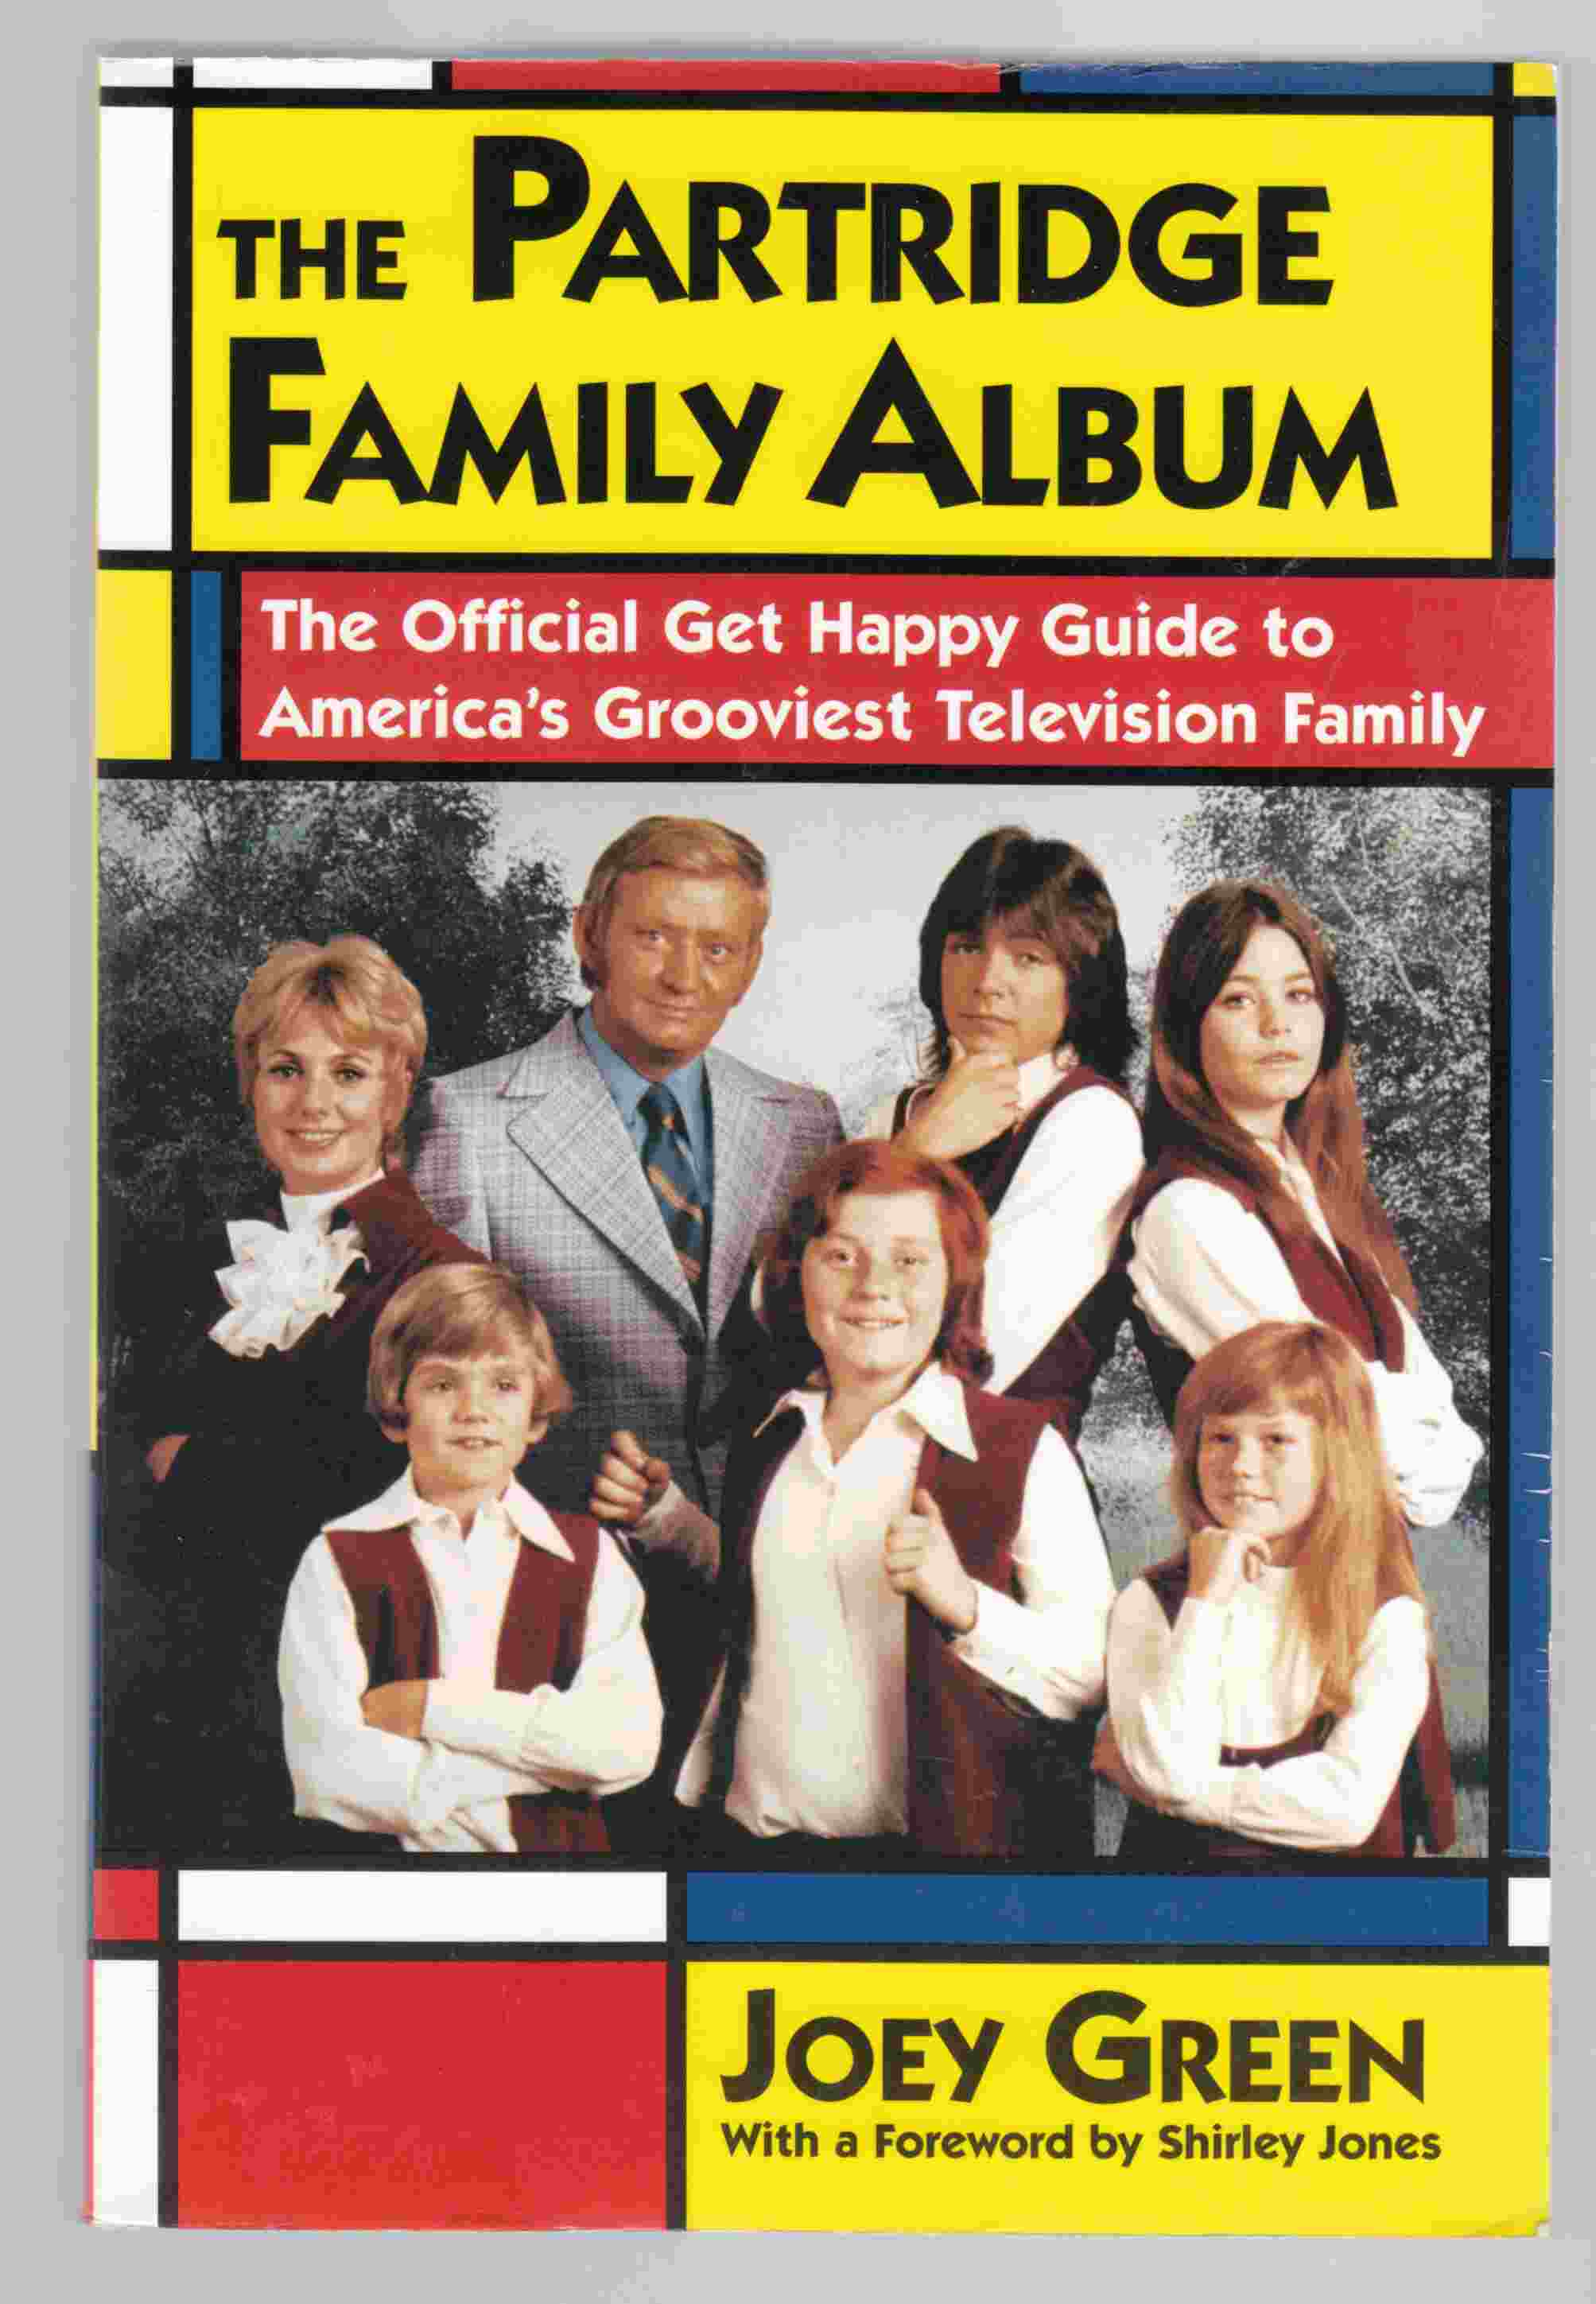 Image for The Partridge Family Album The Official Get Happy Guide to America's Grooviest Television Family